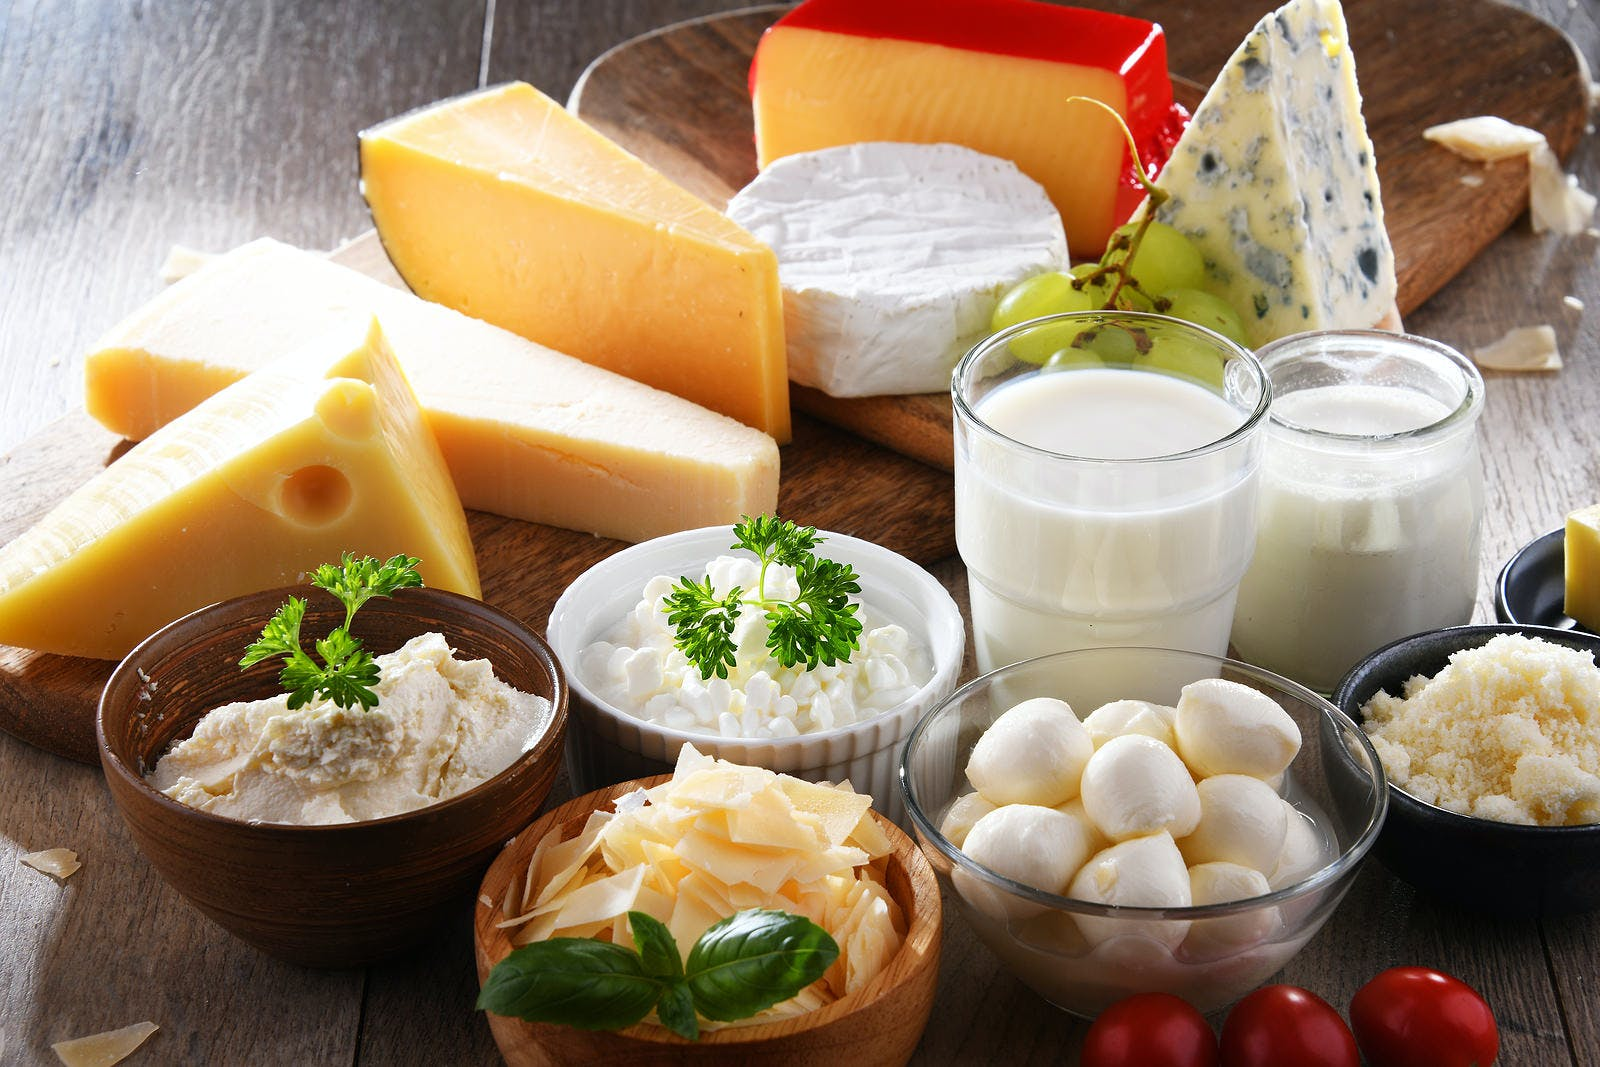 Variety of dairy products including cheese and milk